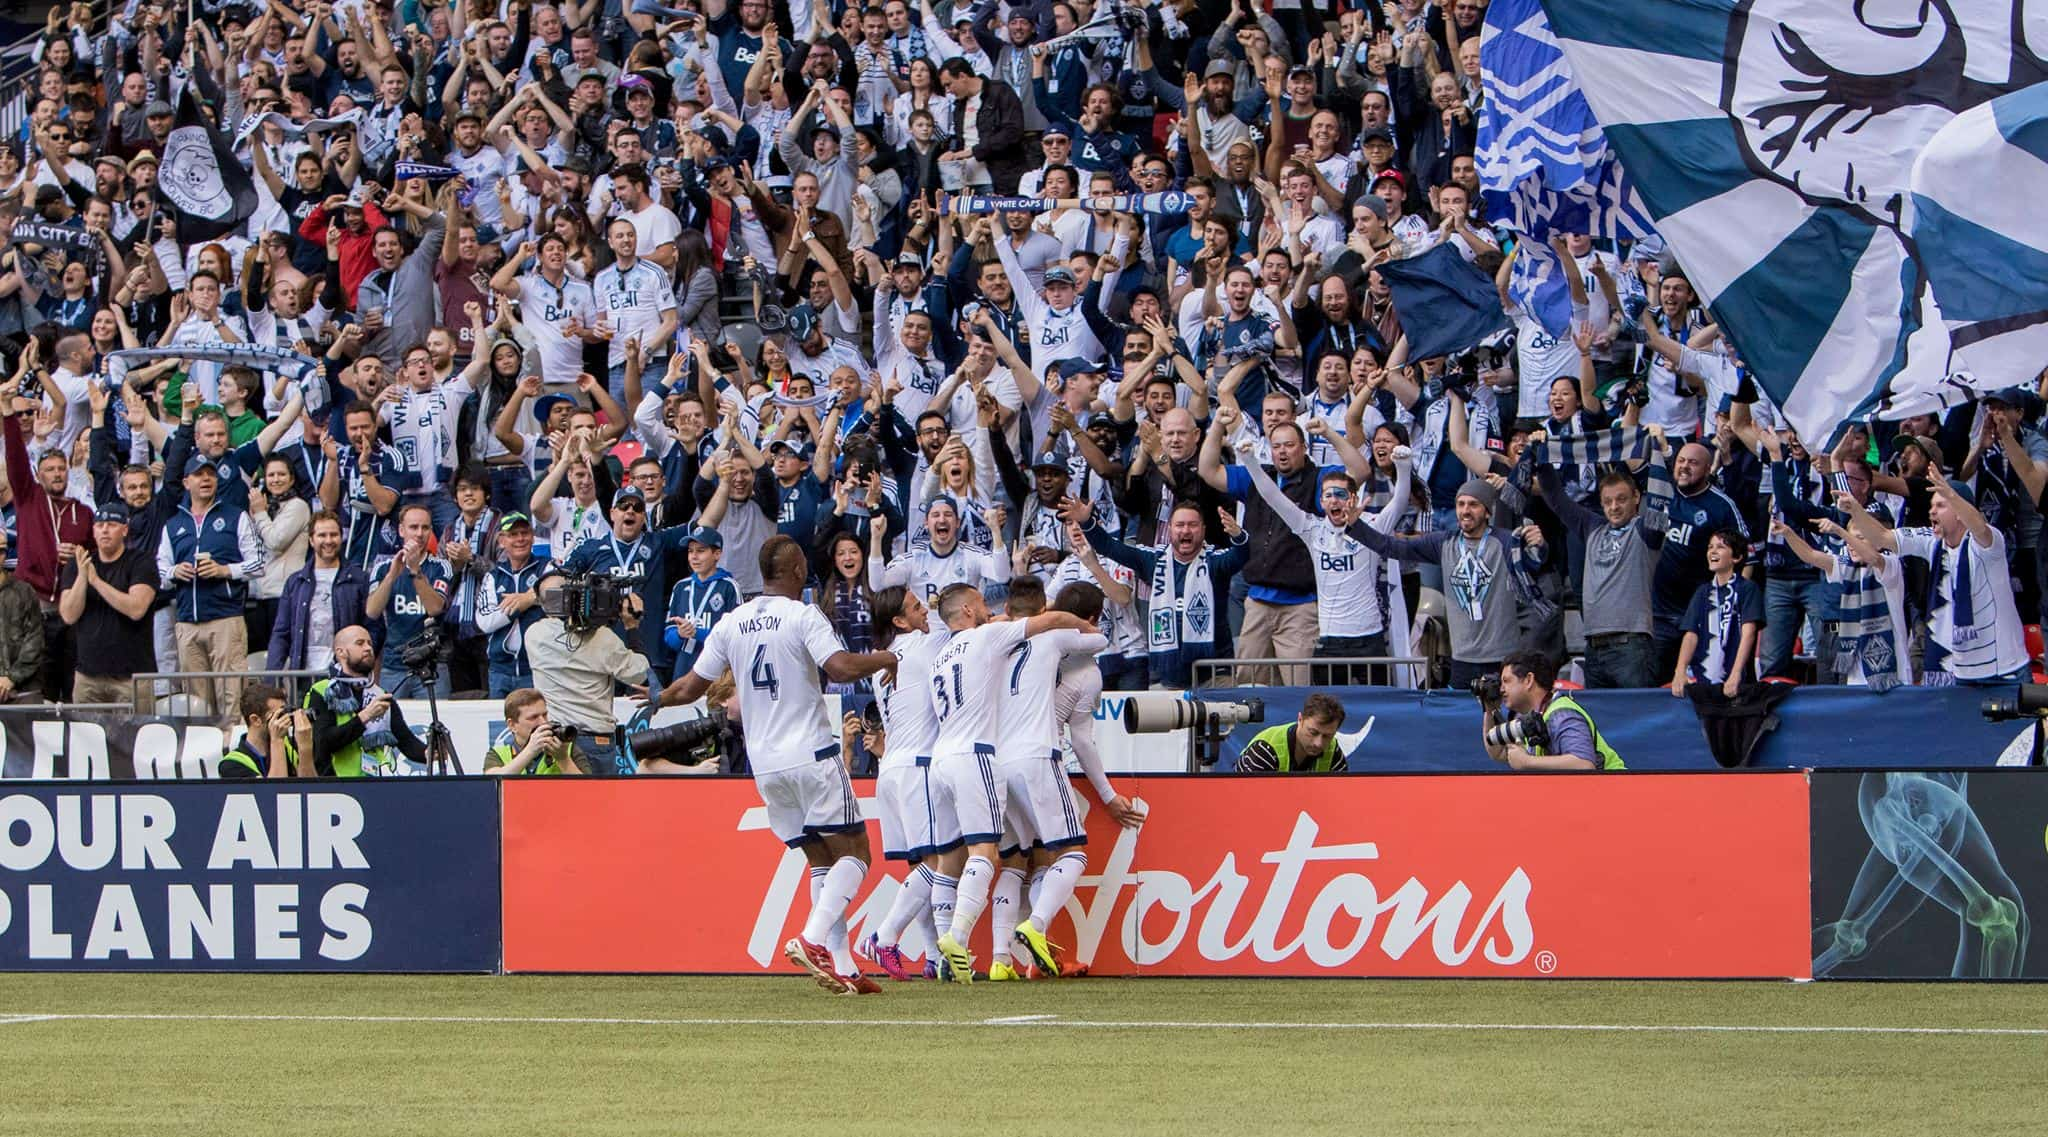 Whitecaps Tickets / Outdoor Date